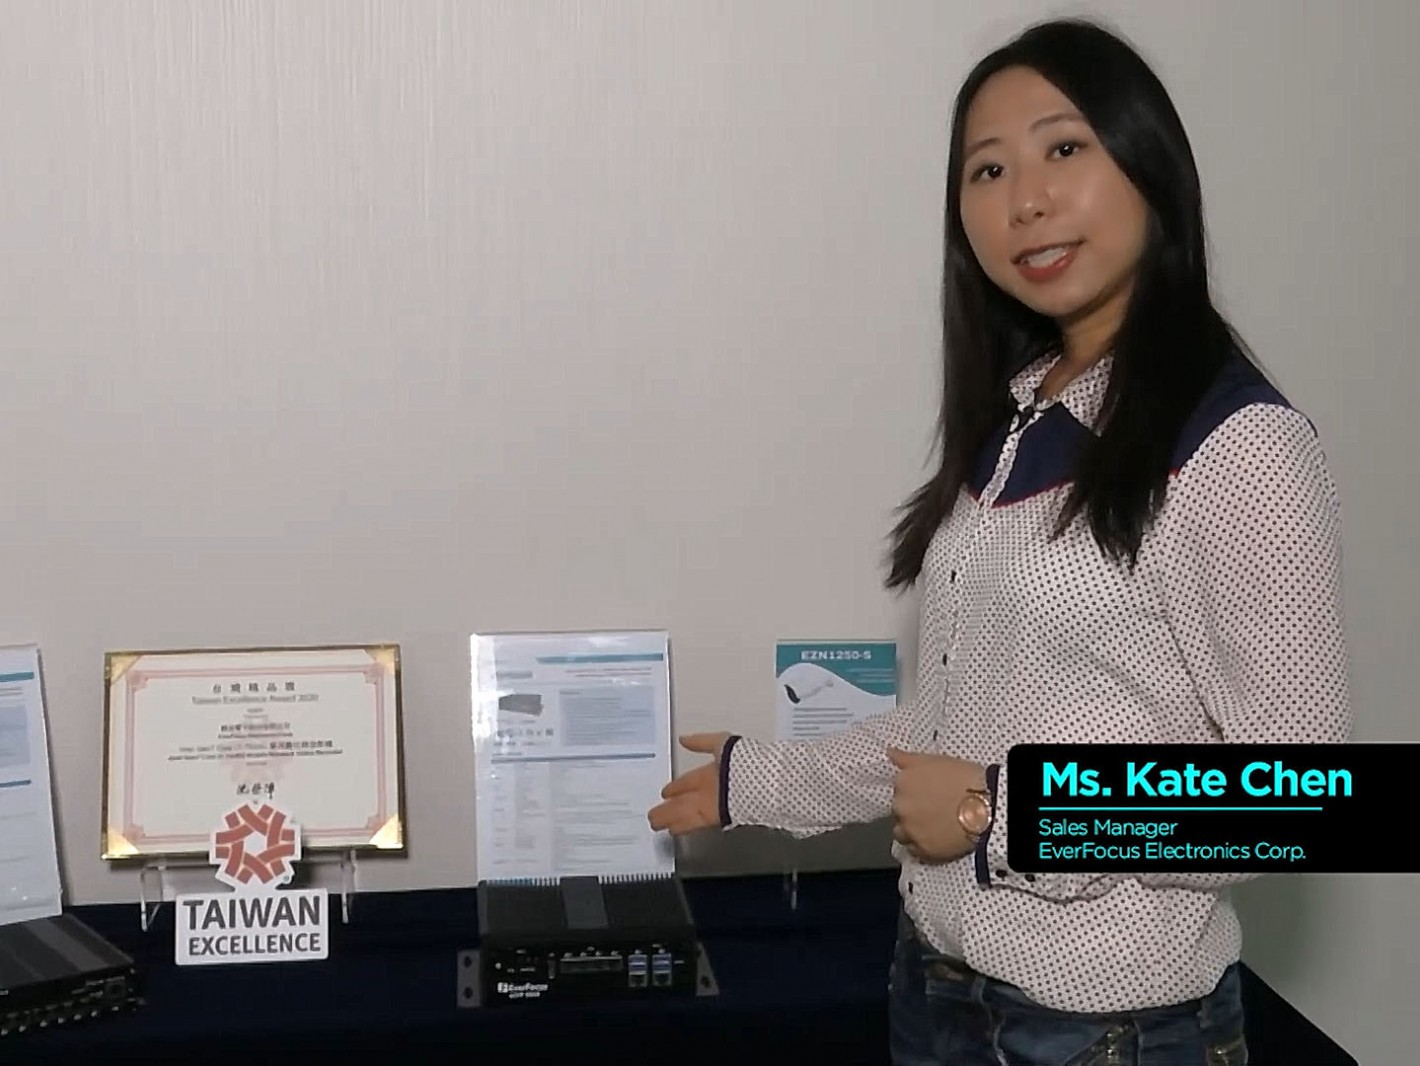 04-Ms. Kate Chen, Sales Manager, EverFocus Electronics Corp. presented on the topic of  Fleet Management System using AI at the Edge.